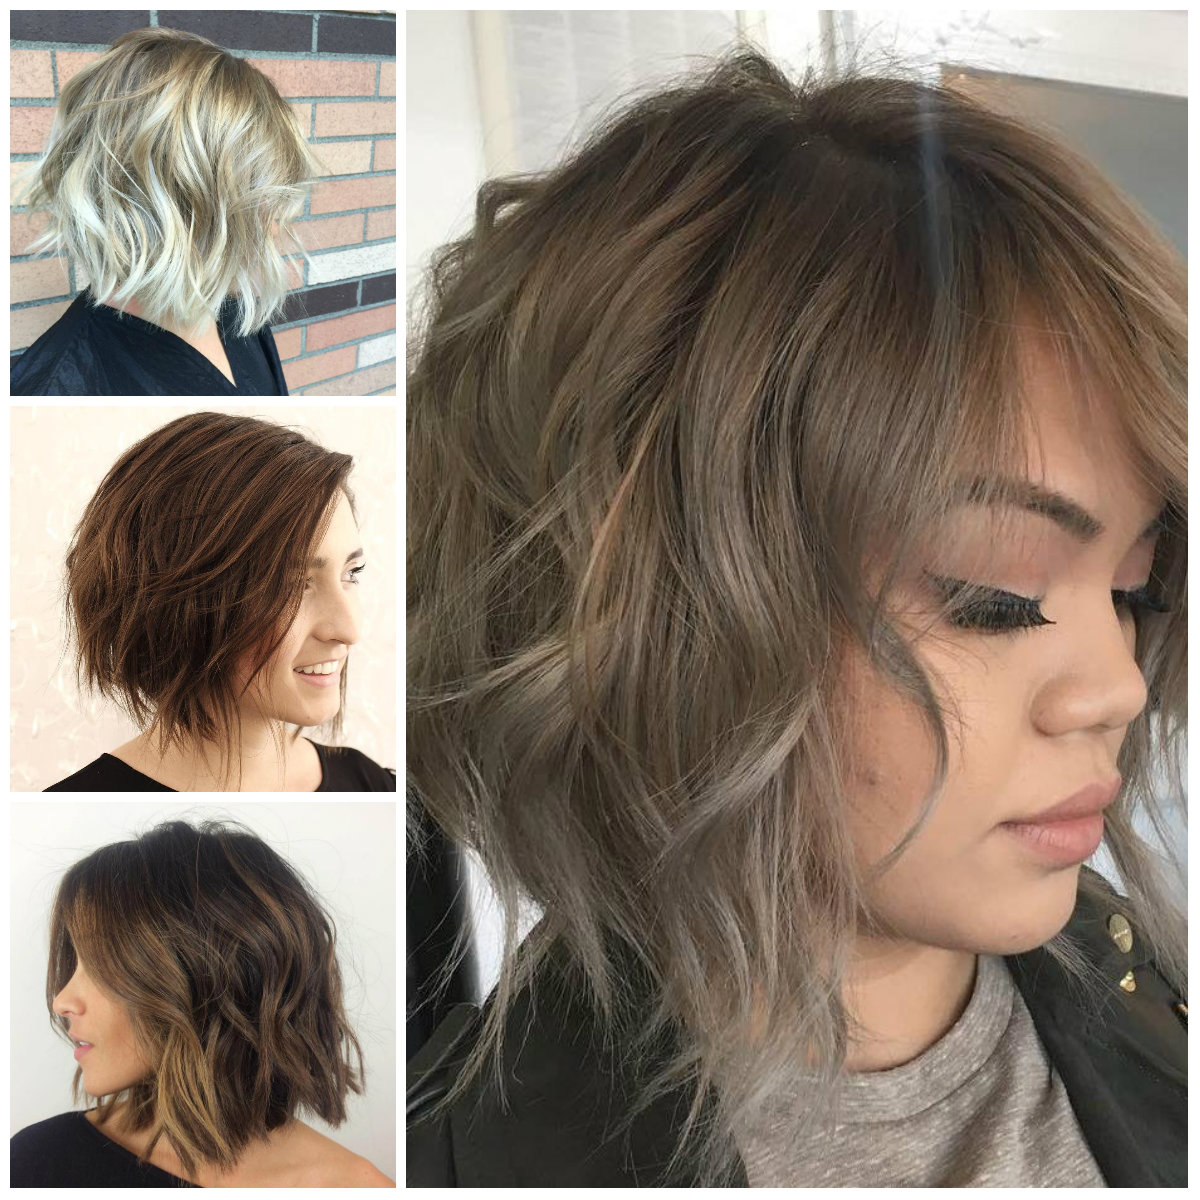 Casual Short Messy Hairstyles For Females 2019 Haircuts Hairstyles And Hair Colors